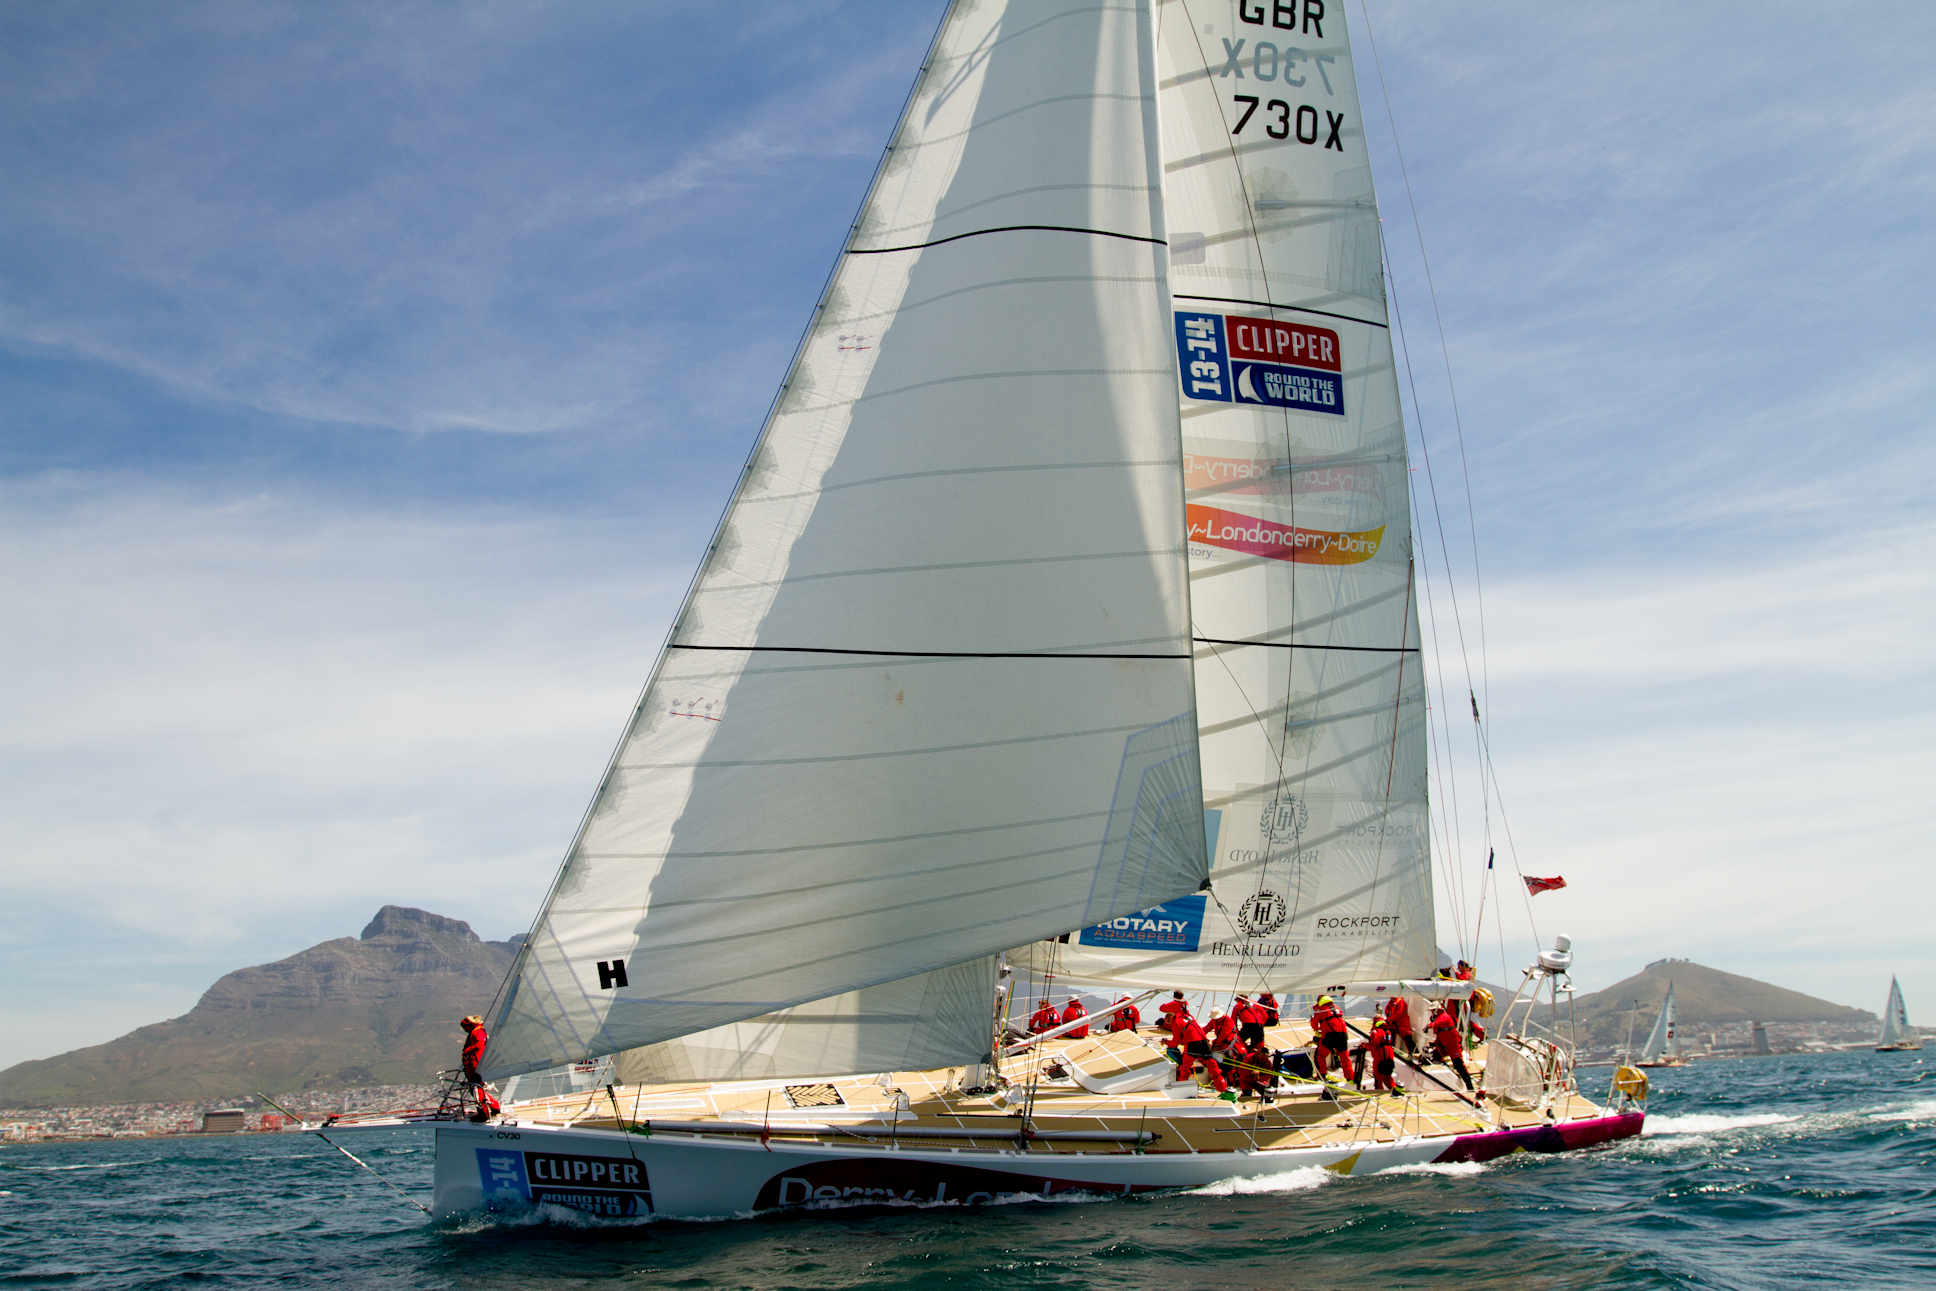 Derry~Londonderry~Doire at the start of Race 4 of the Clipper Round the World Yacht Race in Cape Town, South Africa